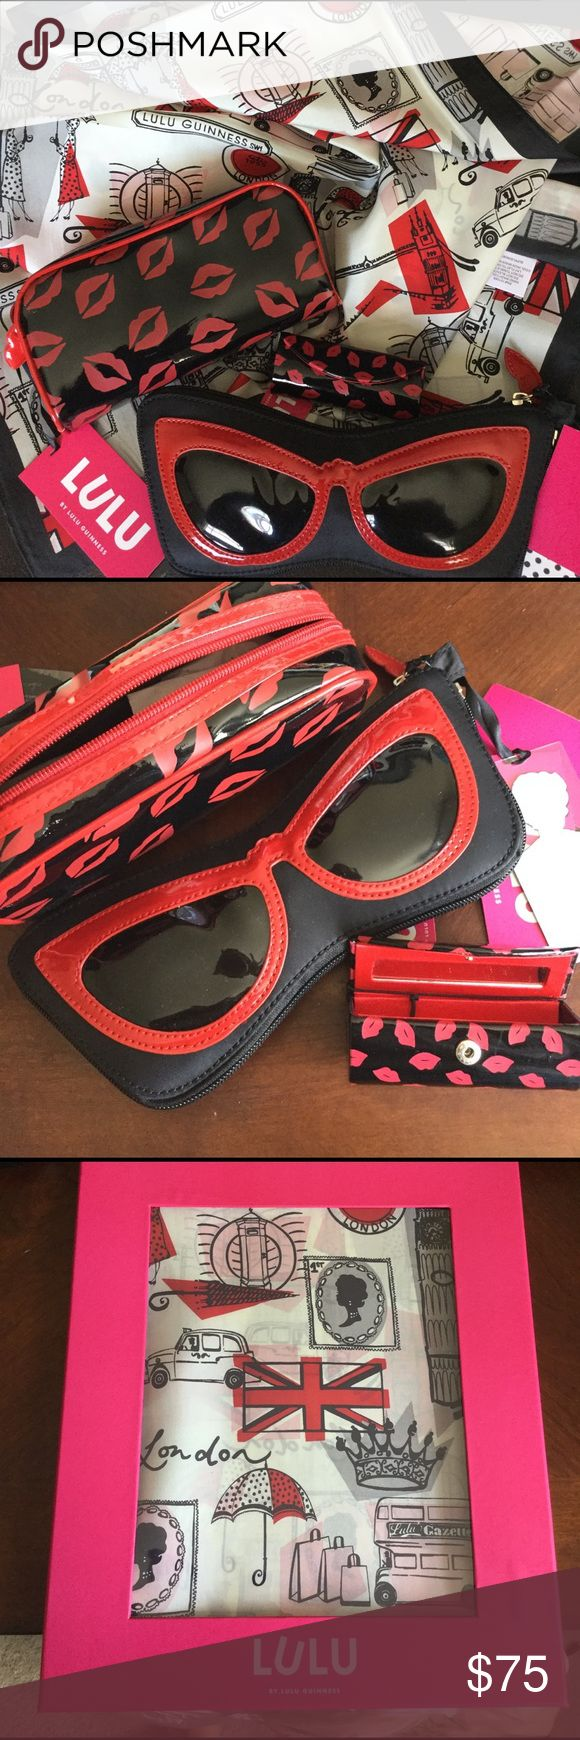 Spotted while shopping on Poshmark: Lulu Guinness Set of 4 Accessories! #poshmark #fashion #shopping #style #lulu guinness #Accessories